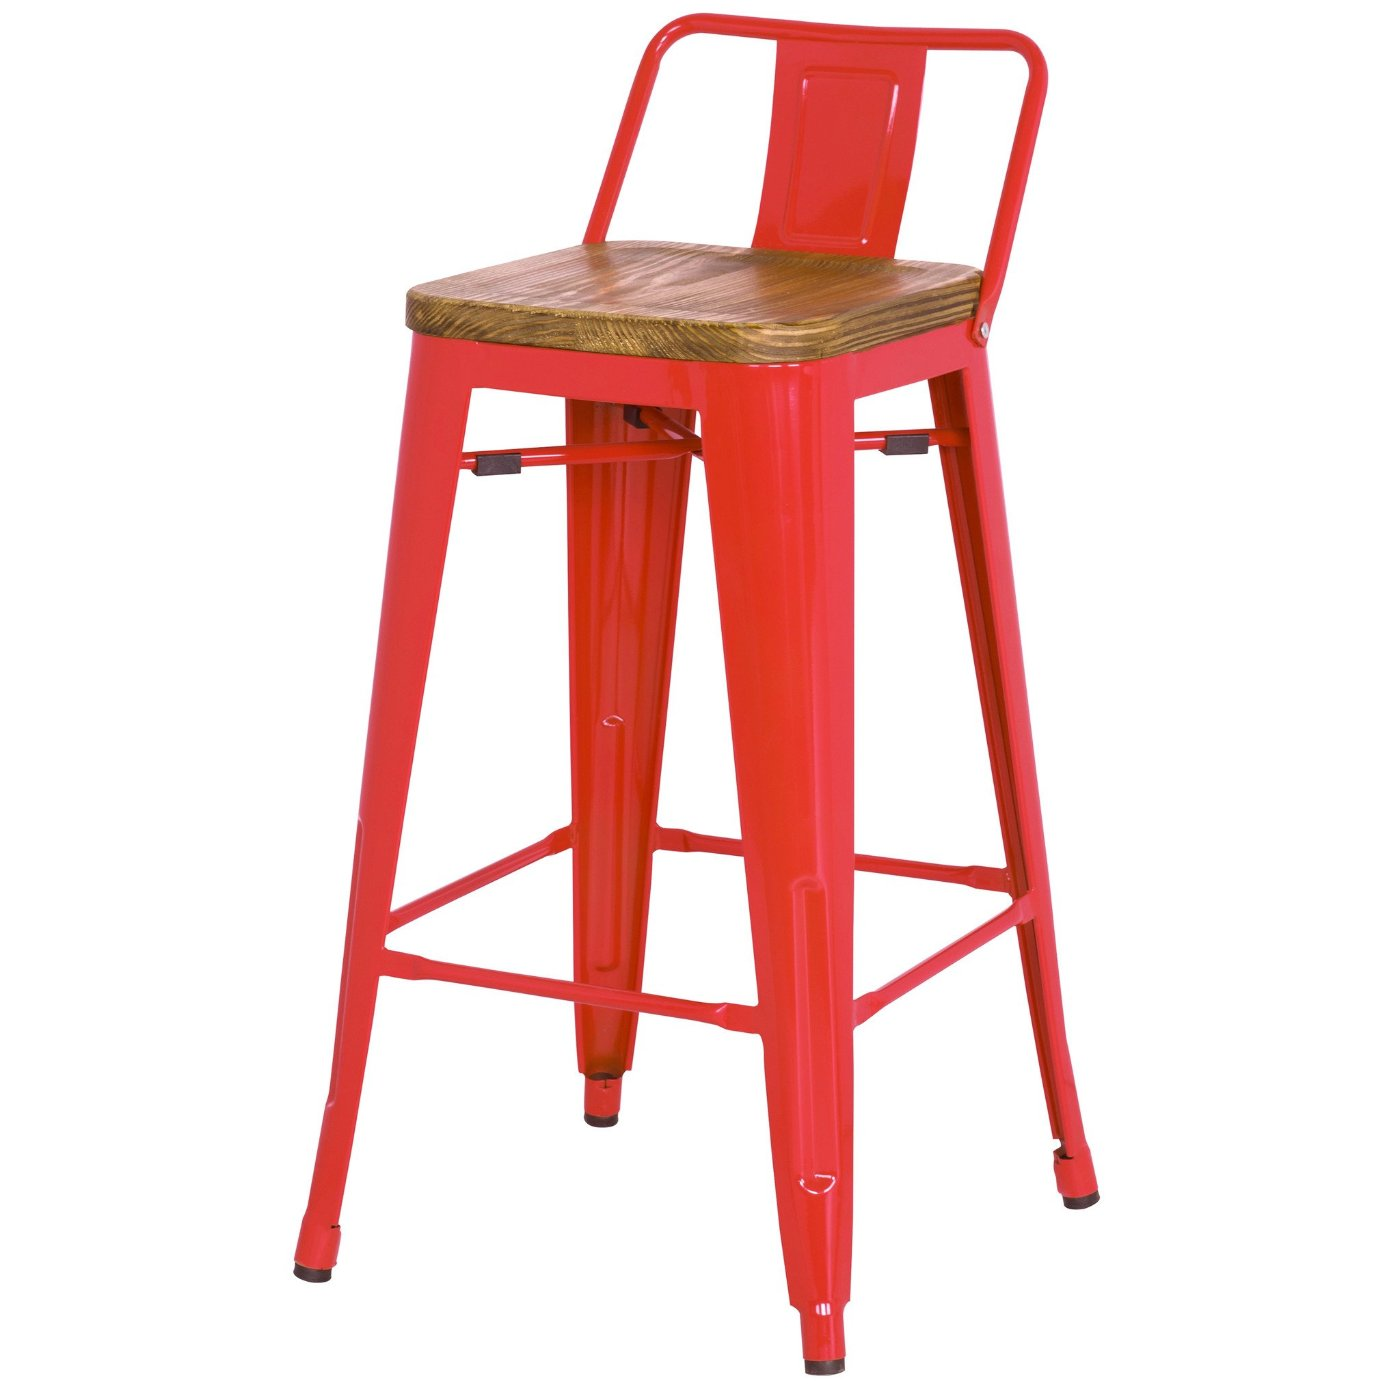 Grand Metal Low Back Counter Stool- Set of 4 RED